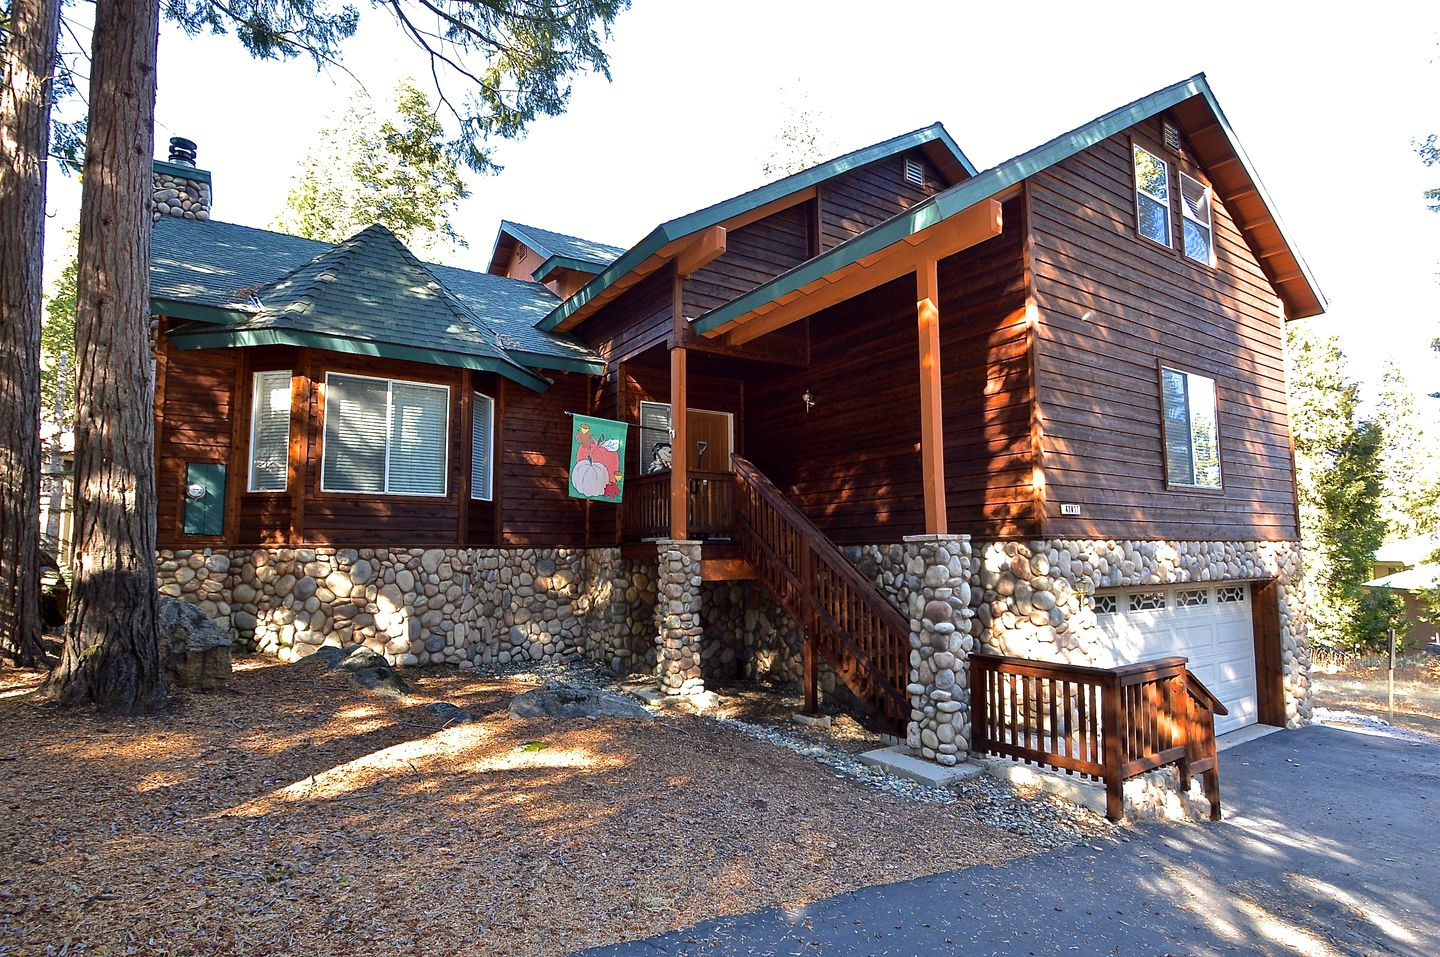 Shaver Lake rentals in Sierra National Forest, California